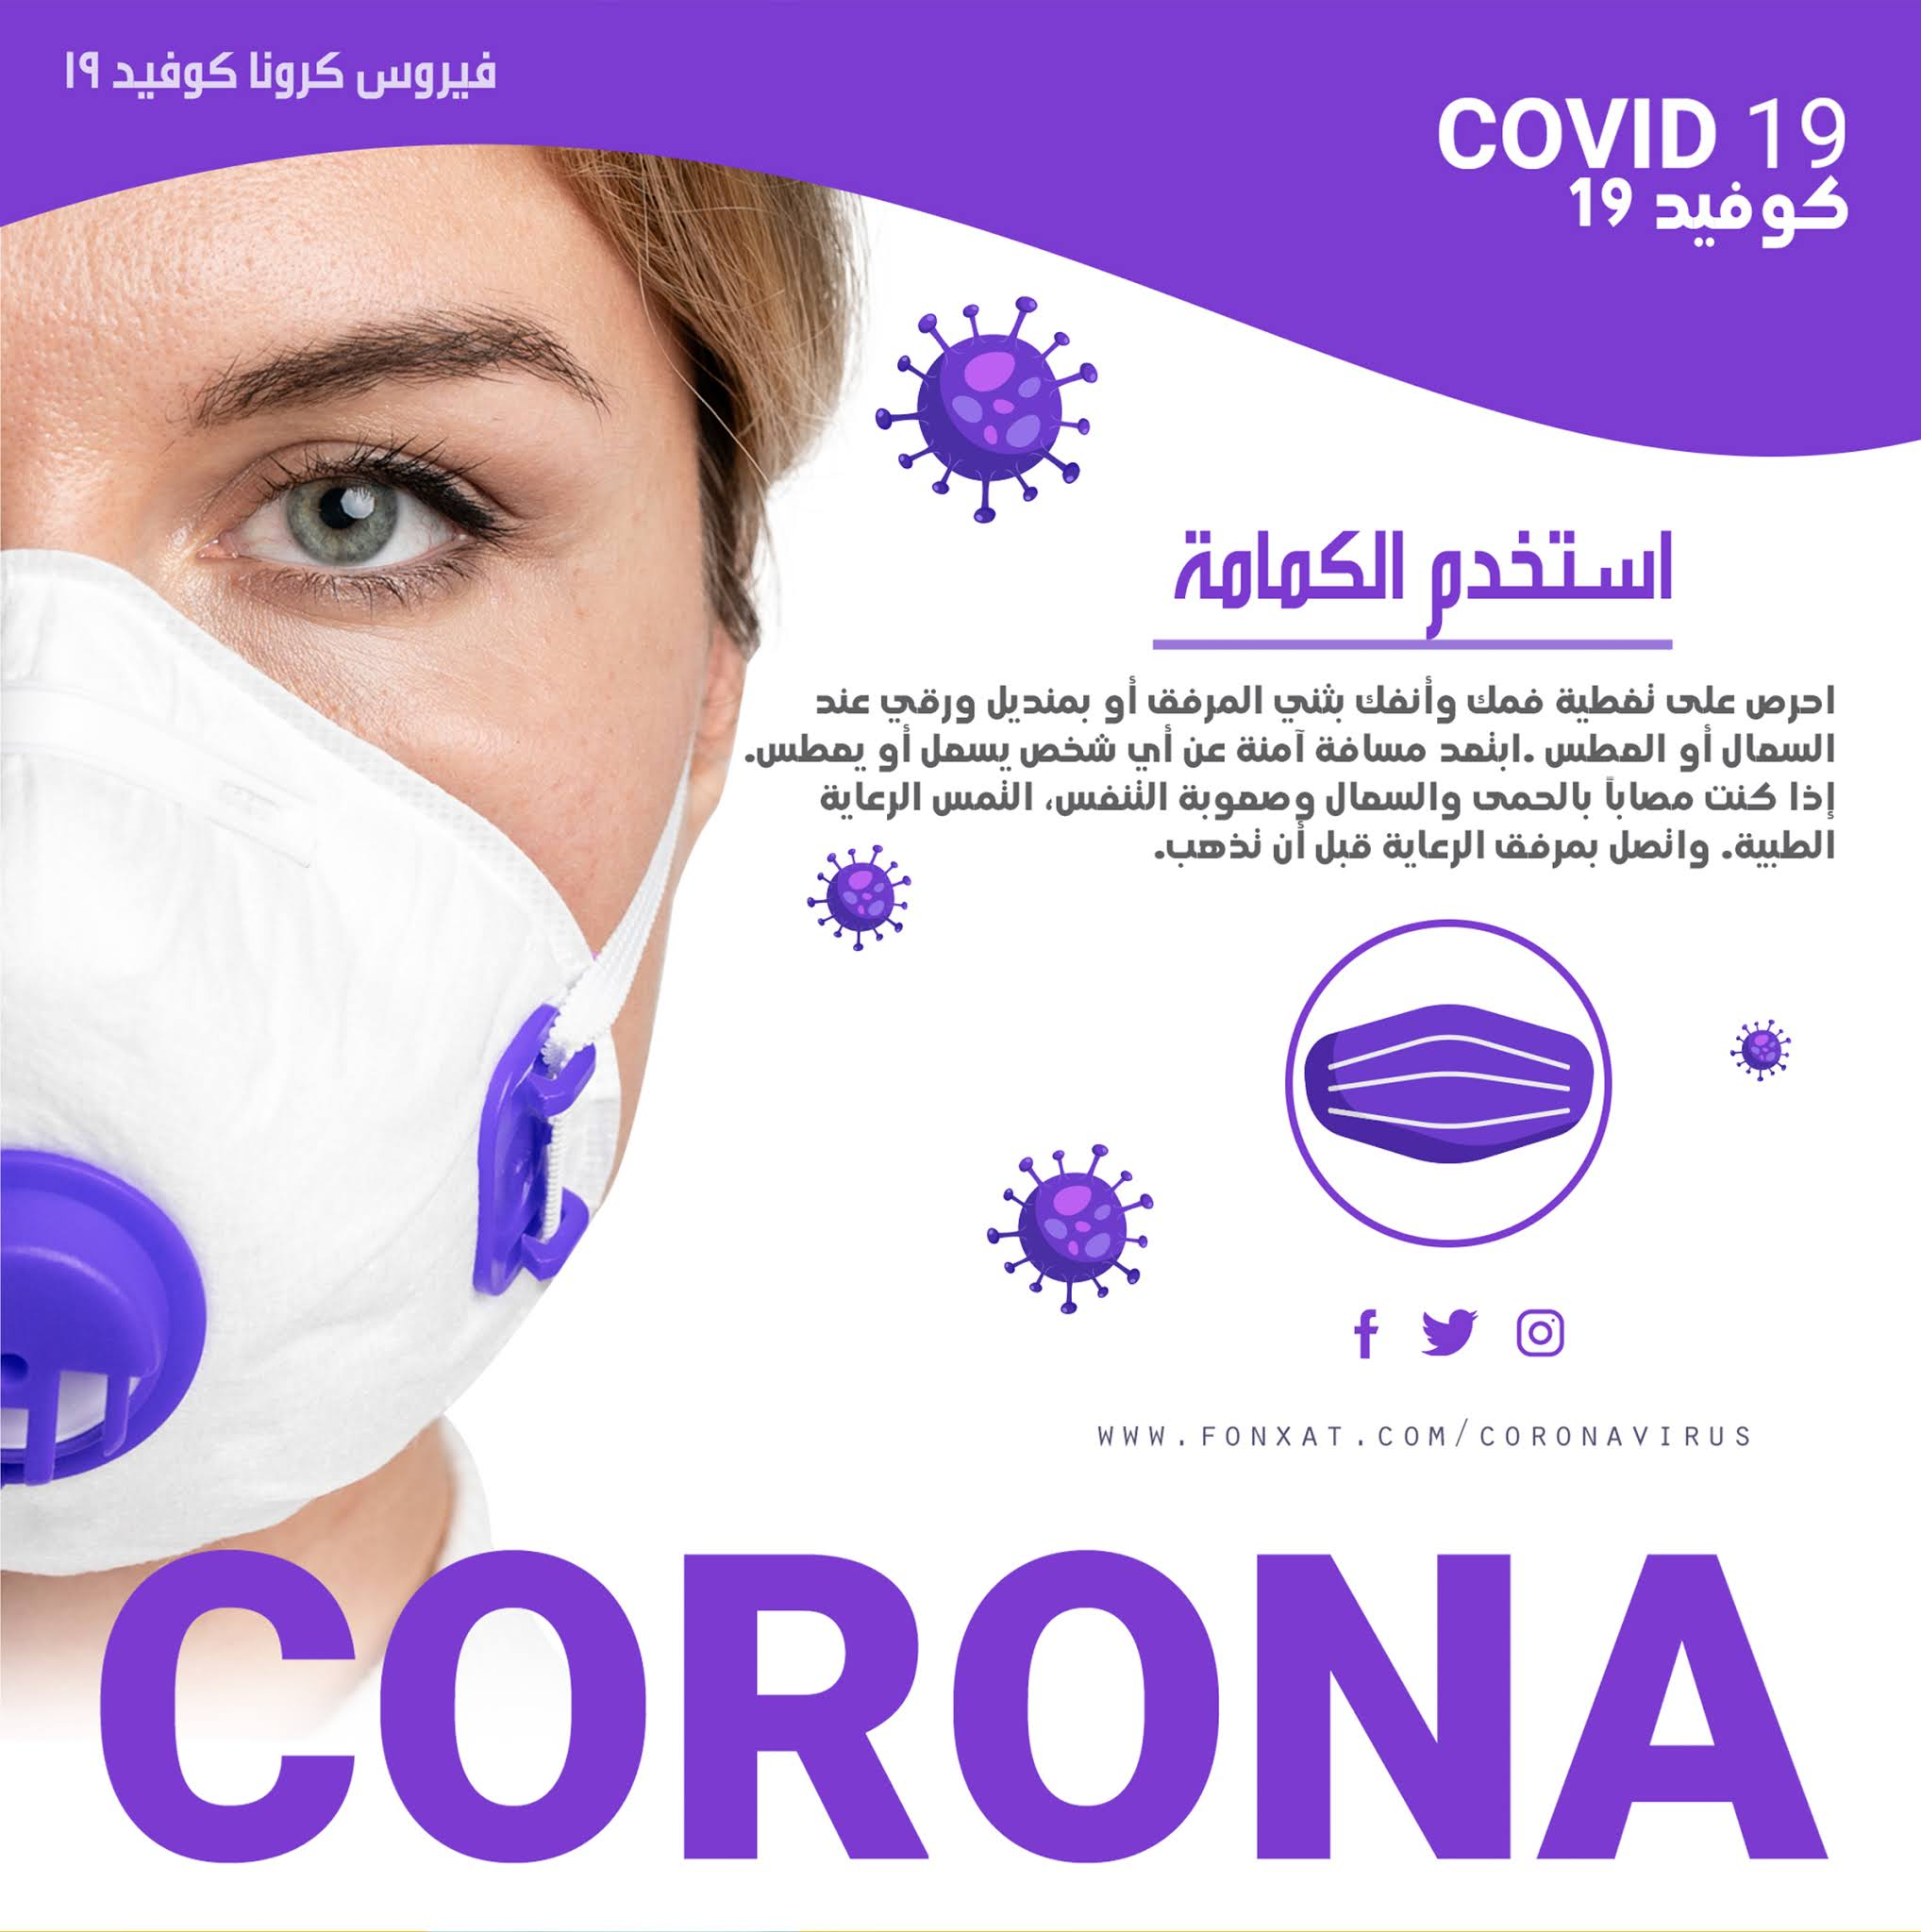 High quality Corona PSD banner file for Woman in Mask